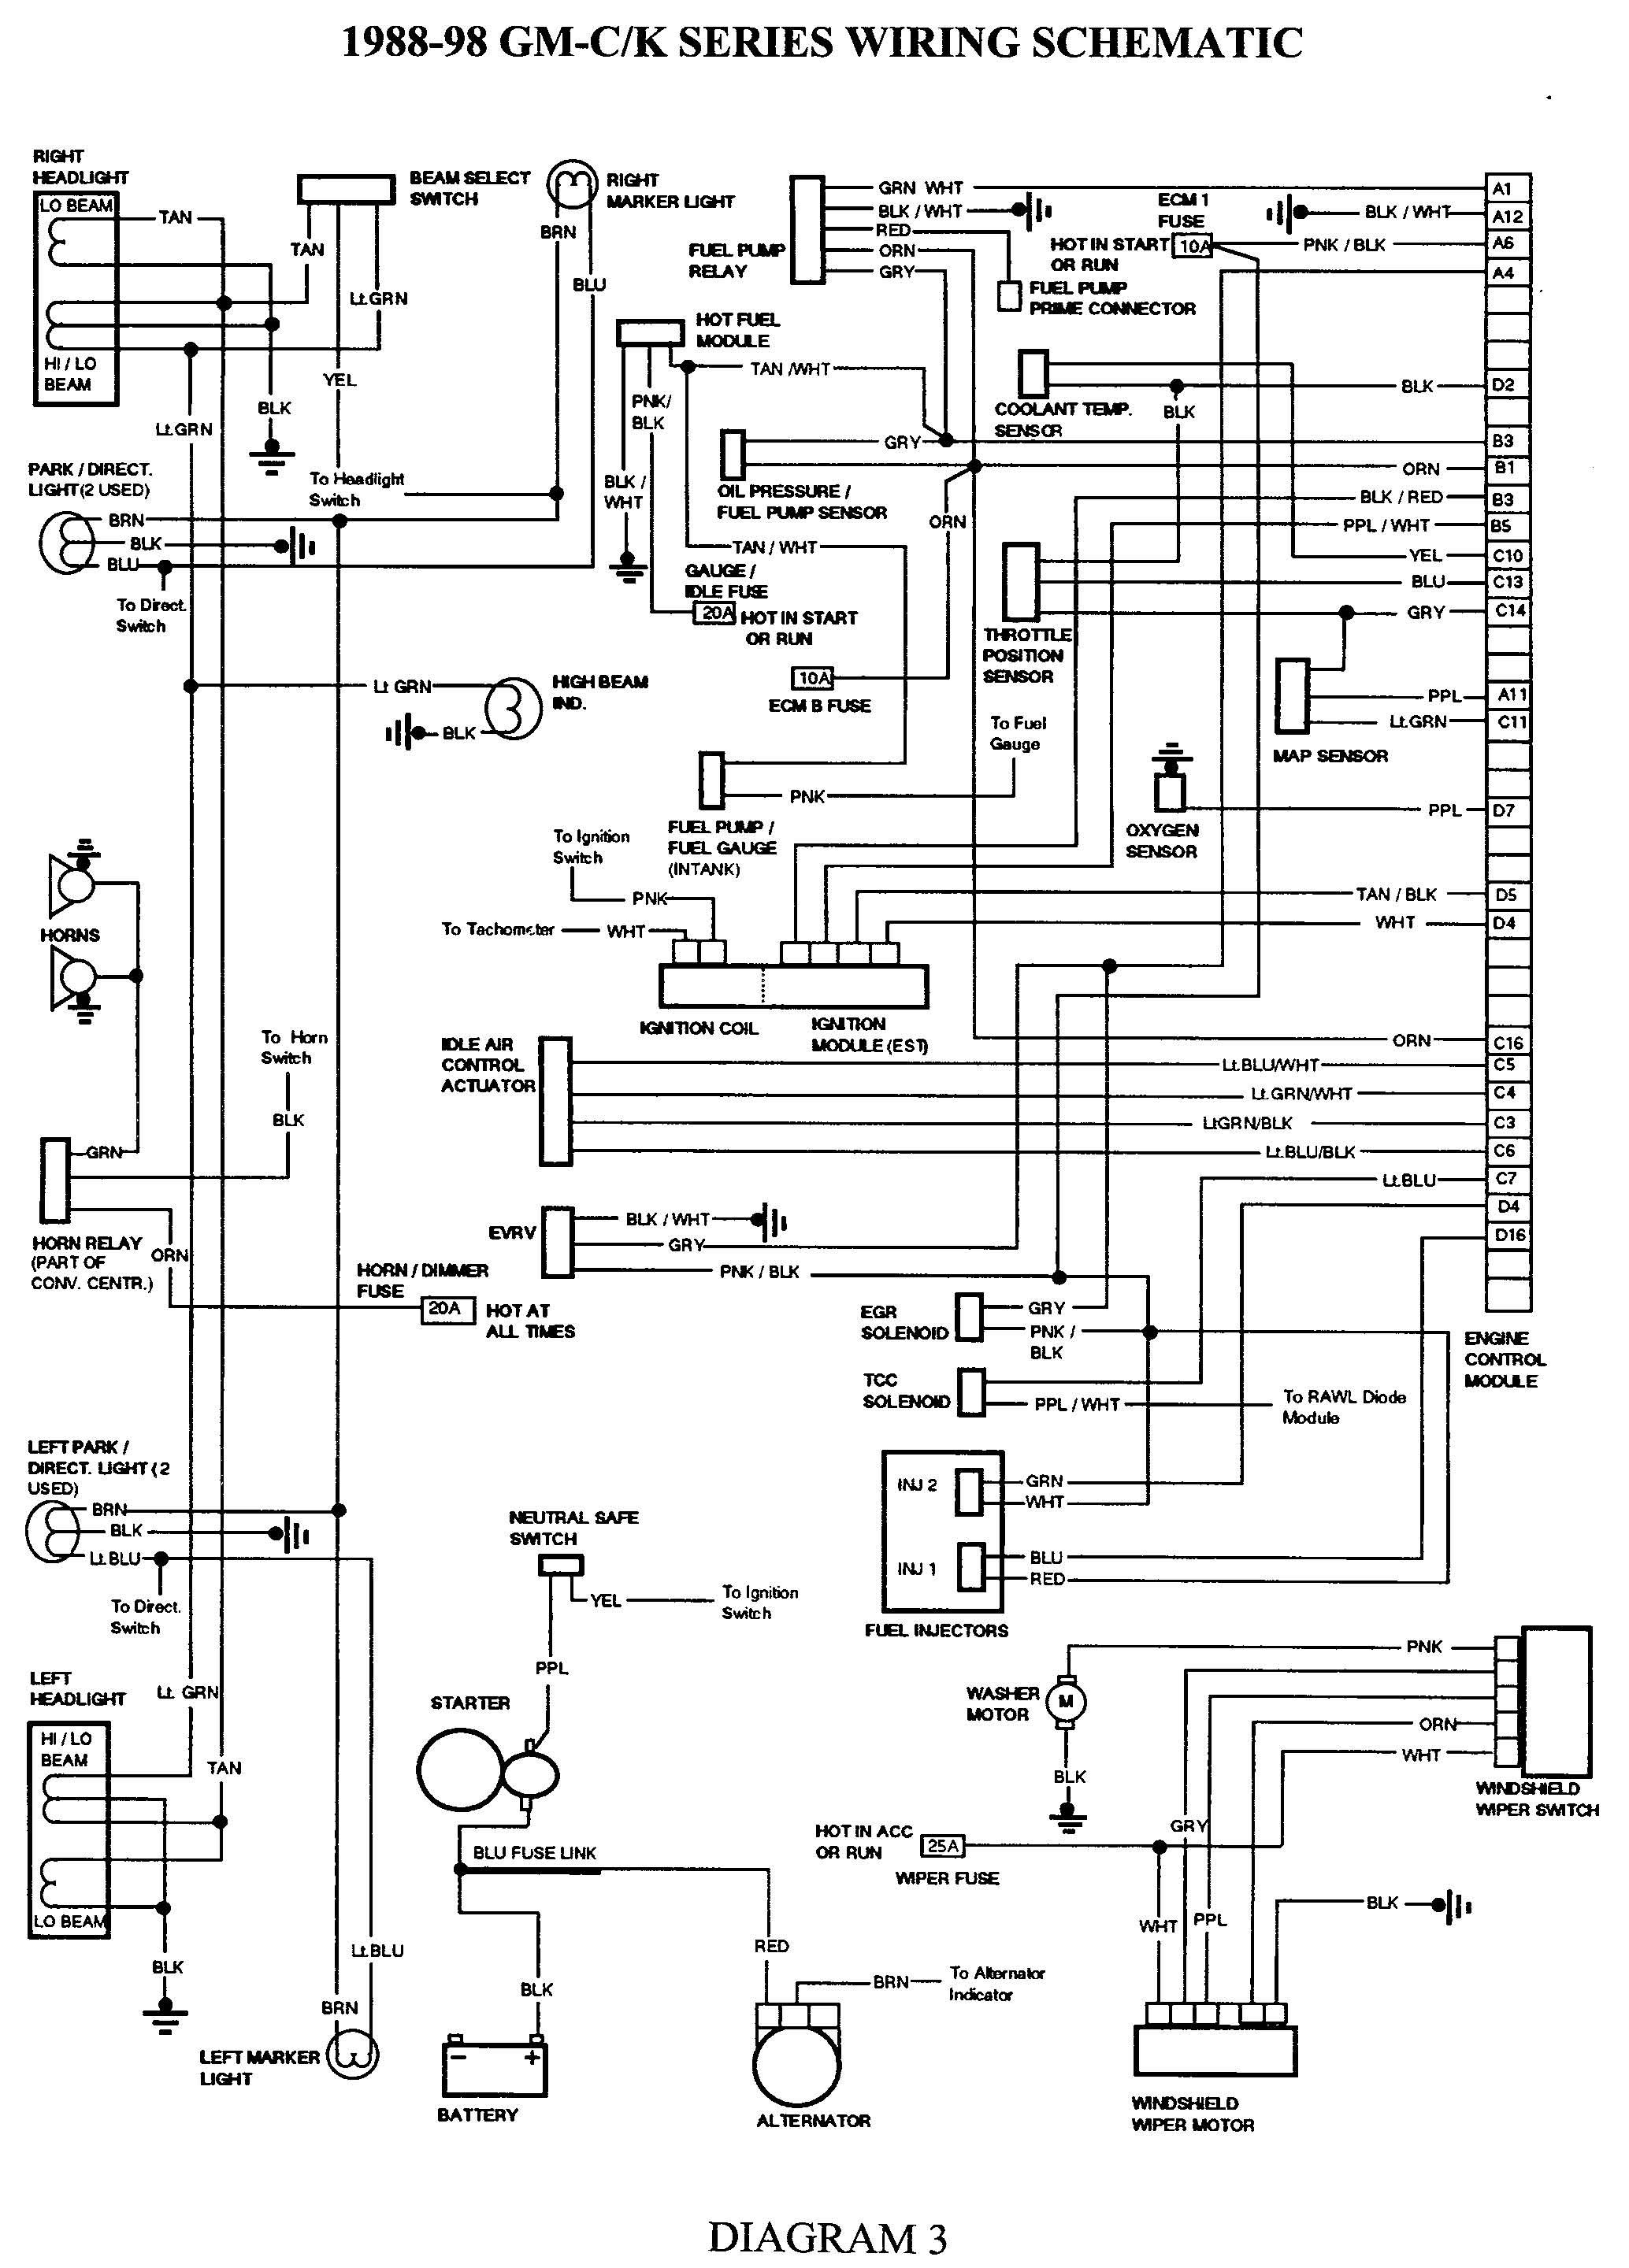 truck wiring diagram external get free image about wiring diagram gmc truck wiring diagrams on gm [ 2068 x 2880 Pixel ]